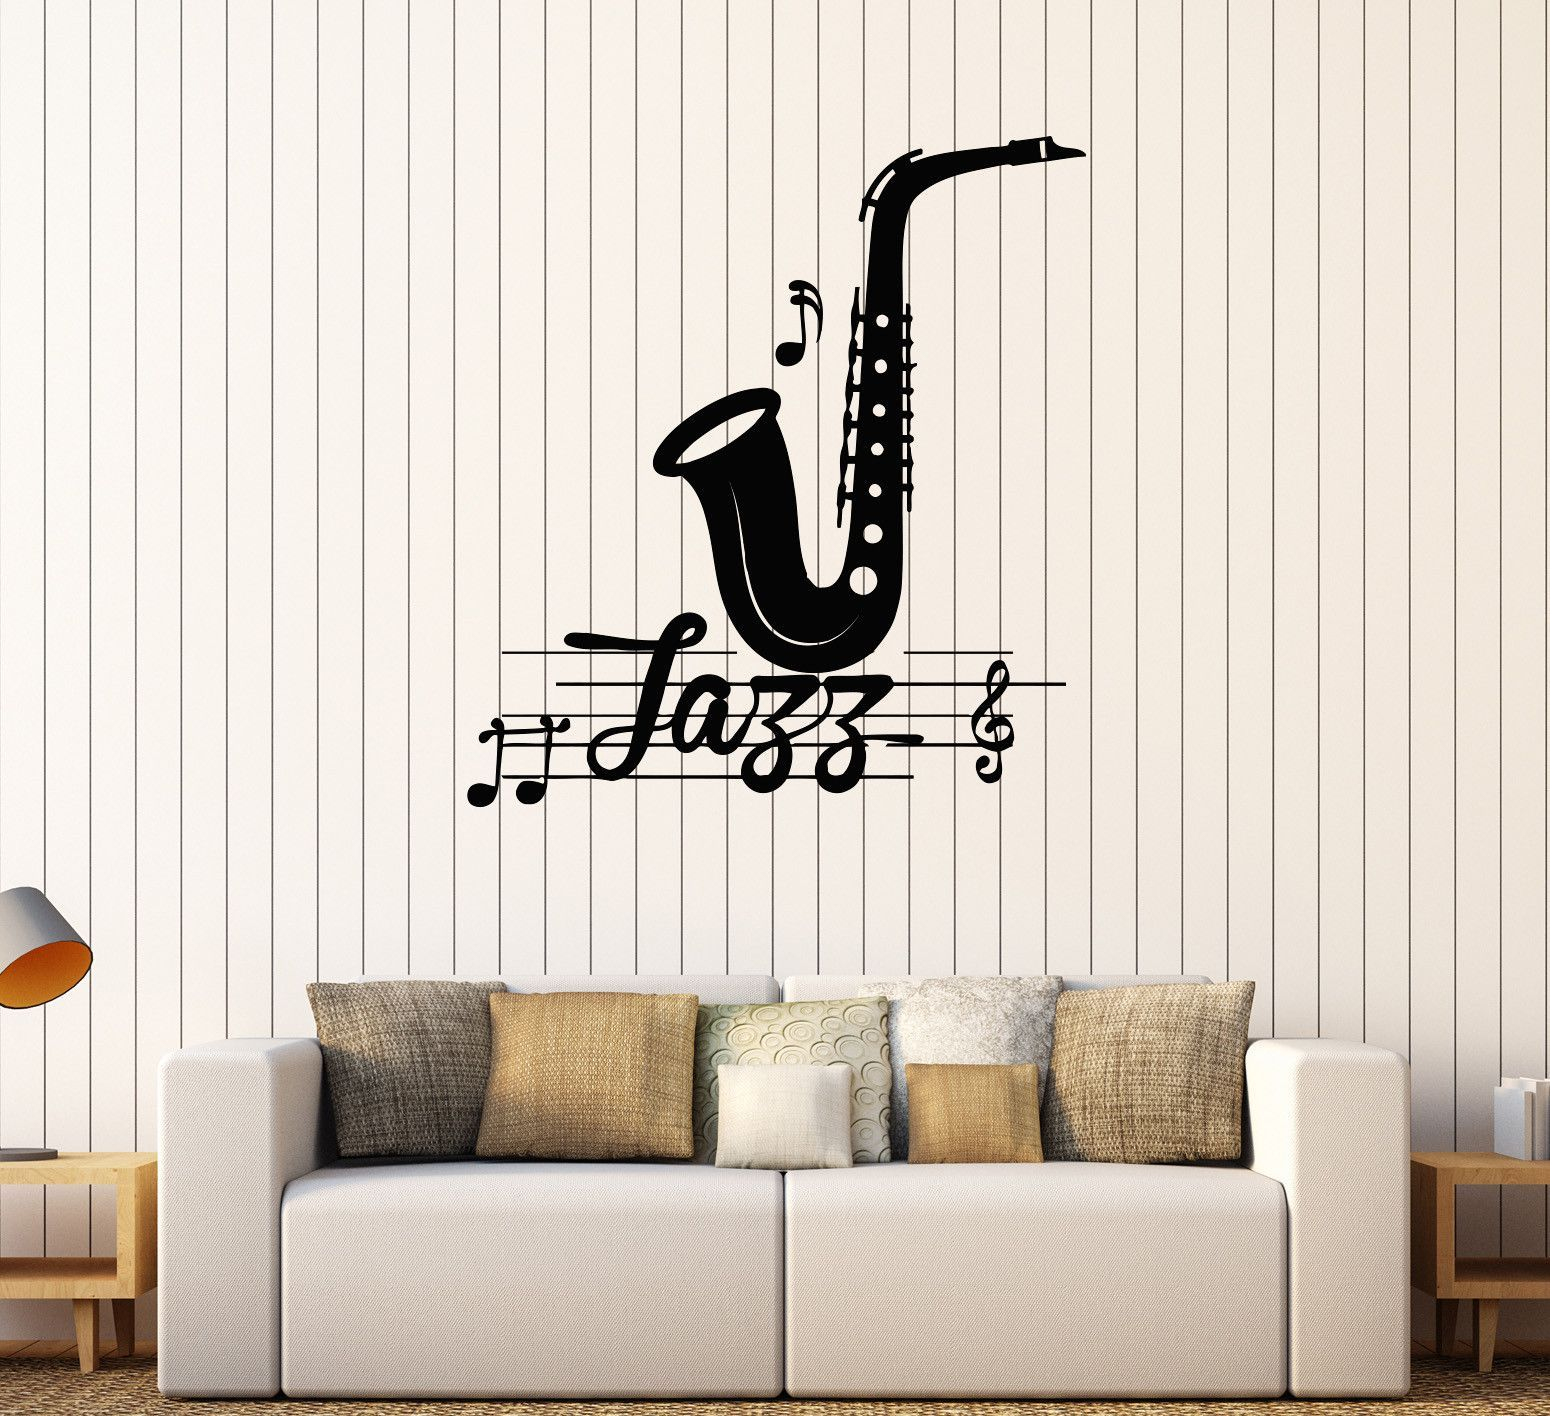 Vinyl Wall Decal Jazz Music Musical Room Decoration Stickers Mural